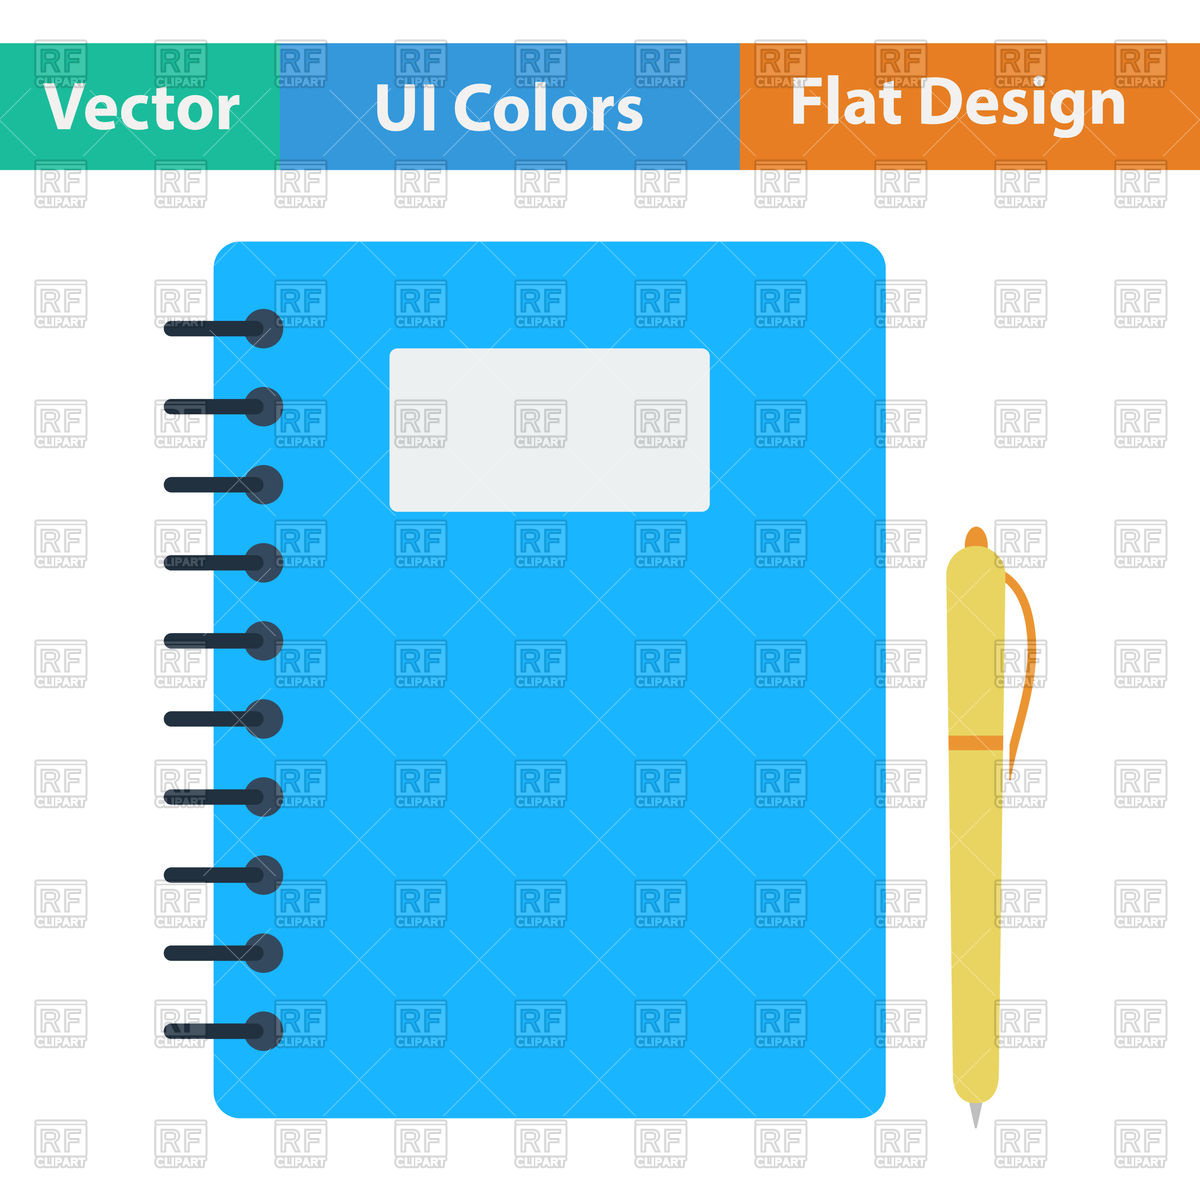 1200x1200 Flat Design Icon Of Exercise Book And Pen In Ui Colors Royalty